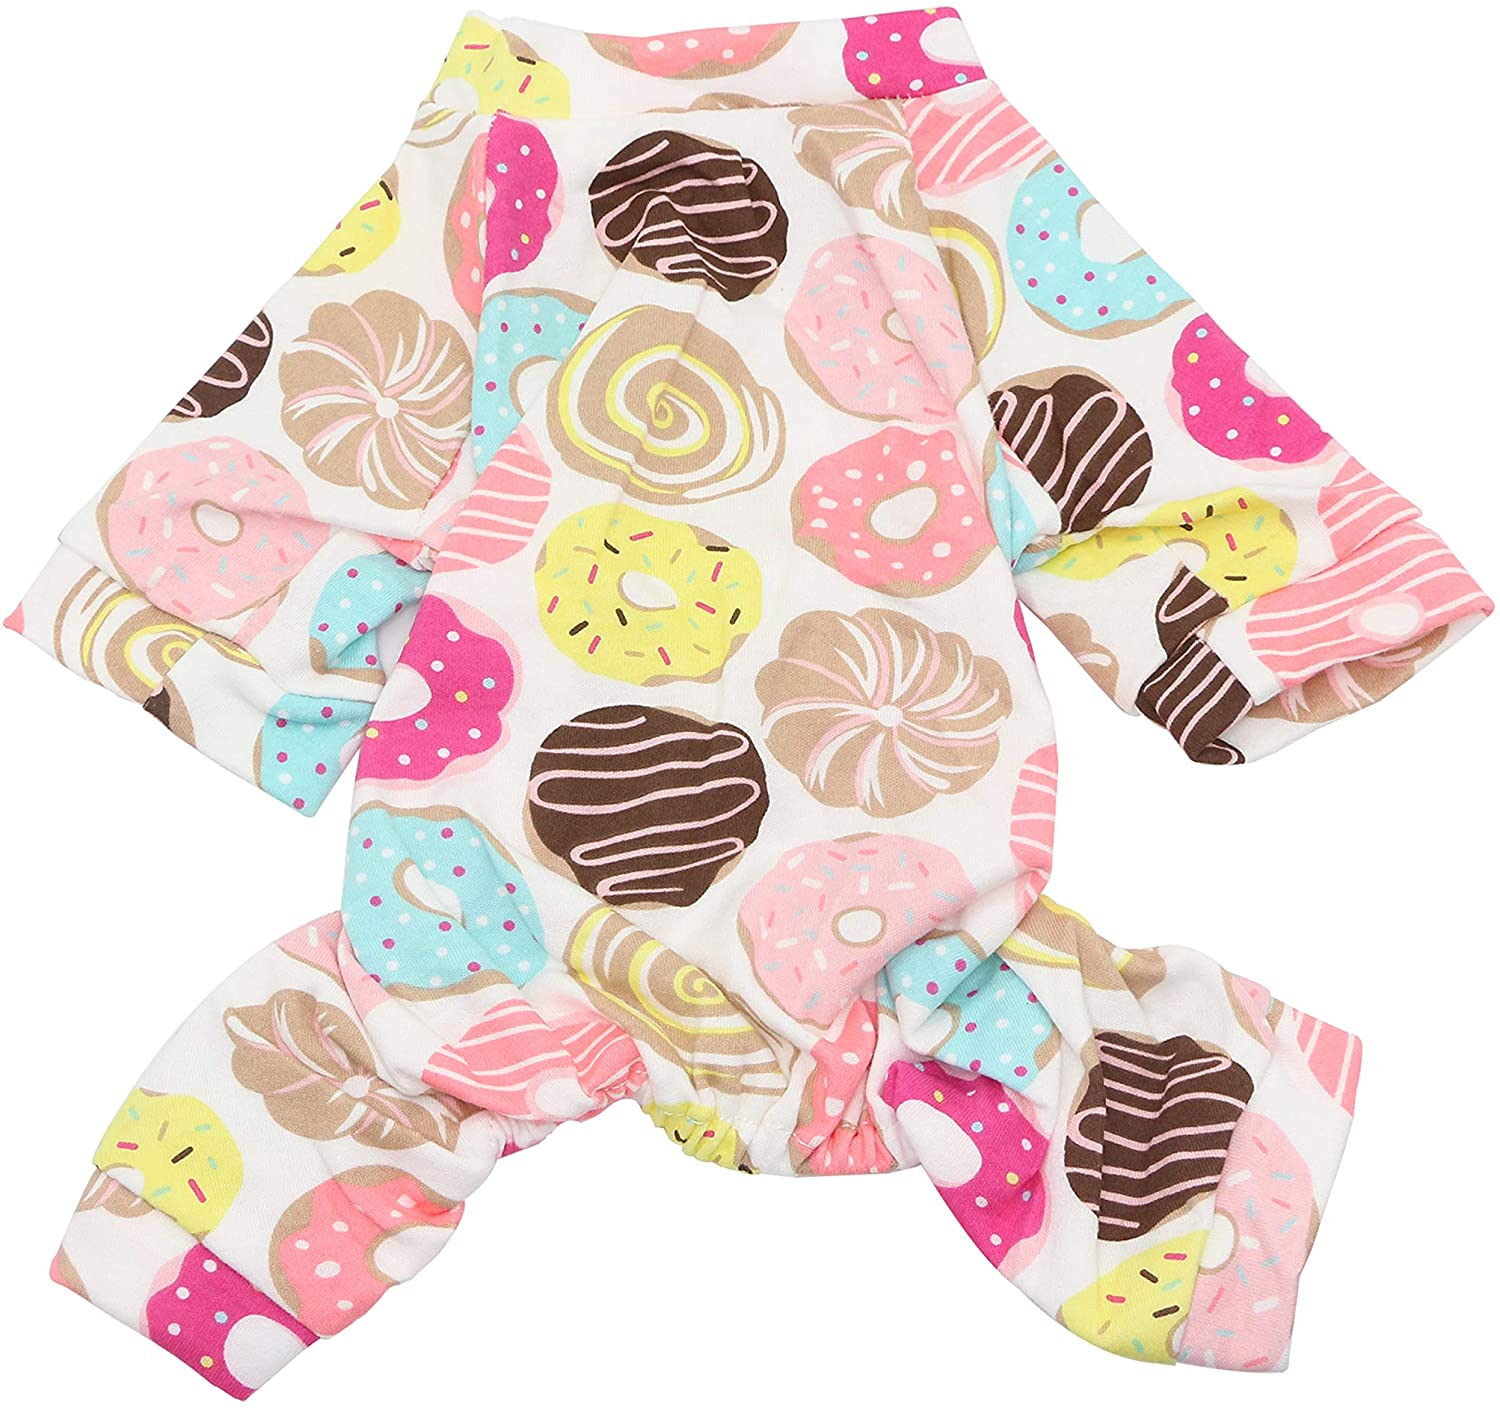 YAODHAOD Dog Pajamas, All Seasons Pure Cotton Dog Jumpsuit, Soft Comfortable Pure Cotton Puppy Rompers with Cute Patterns Pet Pjs Onesie for Small Medium Cat Dogs